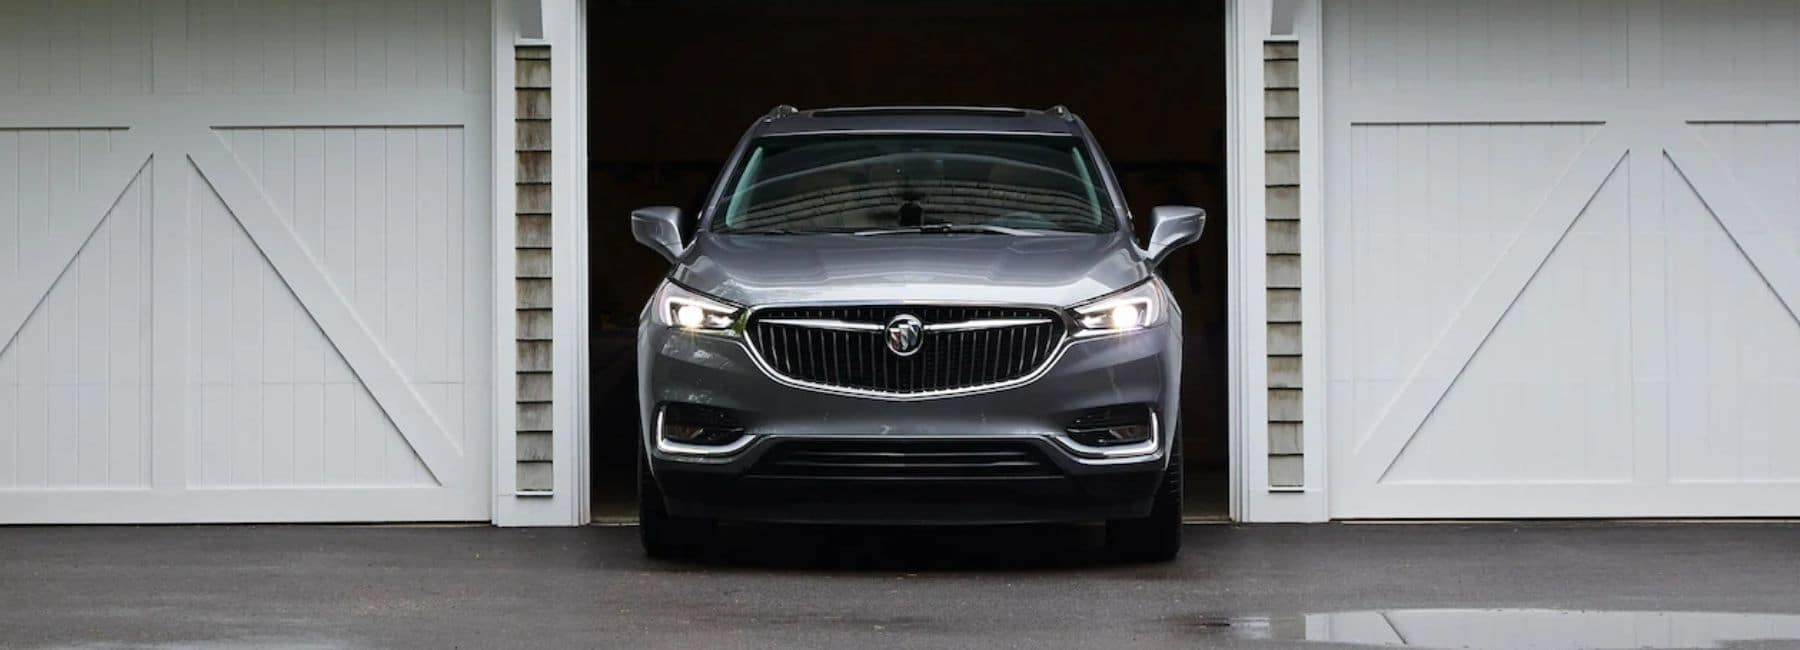 Front View of 2020 Buick Enclave in the Middle Door of A Three Car Garage | Buick Dealer Near Carlsbad, NM